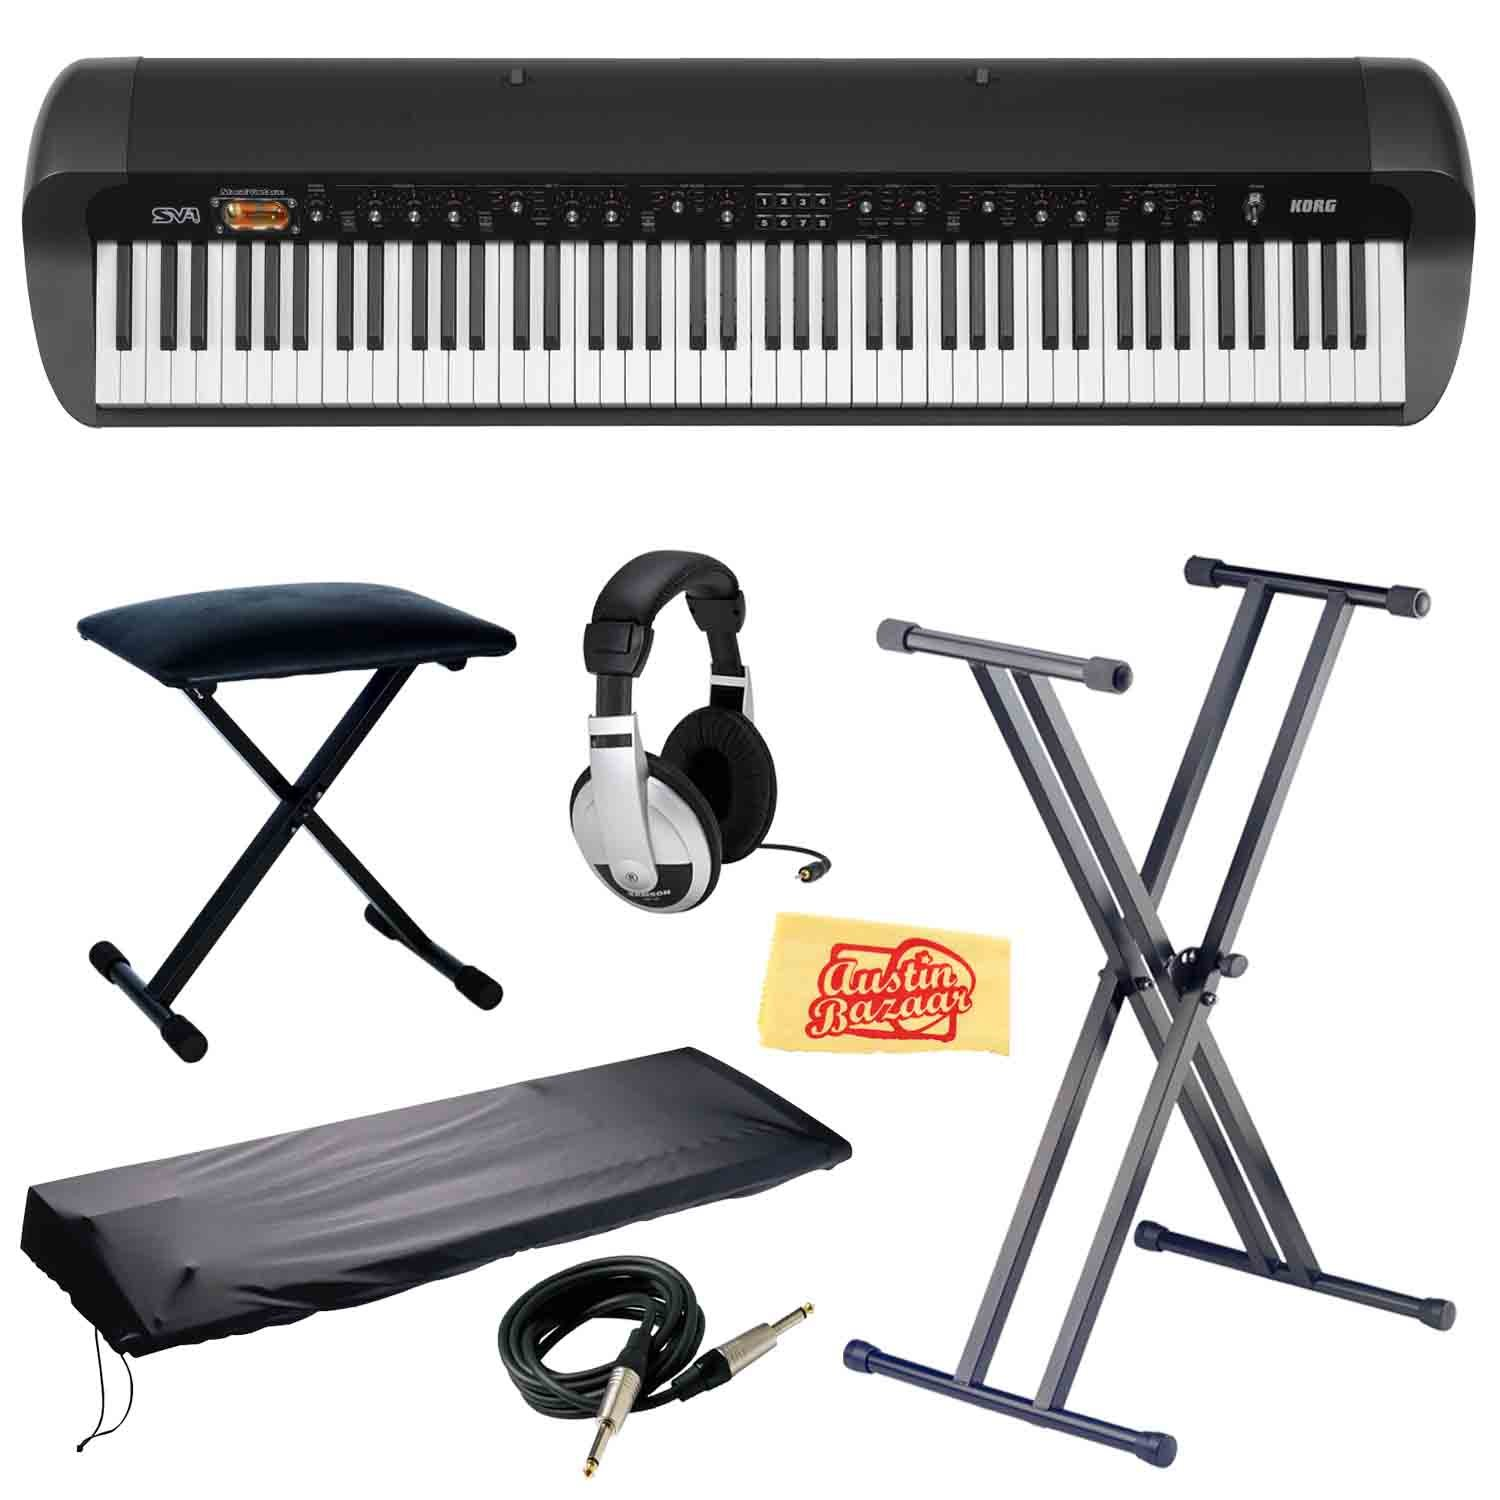 Korg SV-1 Stage Vintage Piano - Black Bundle with Stand, Bench, Dust Cover, Instrument Cable, Headphones, and Polishing Cloth